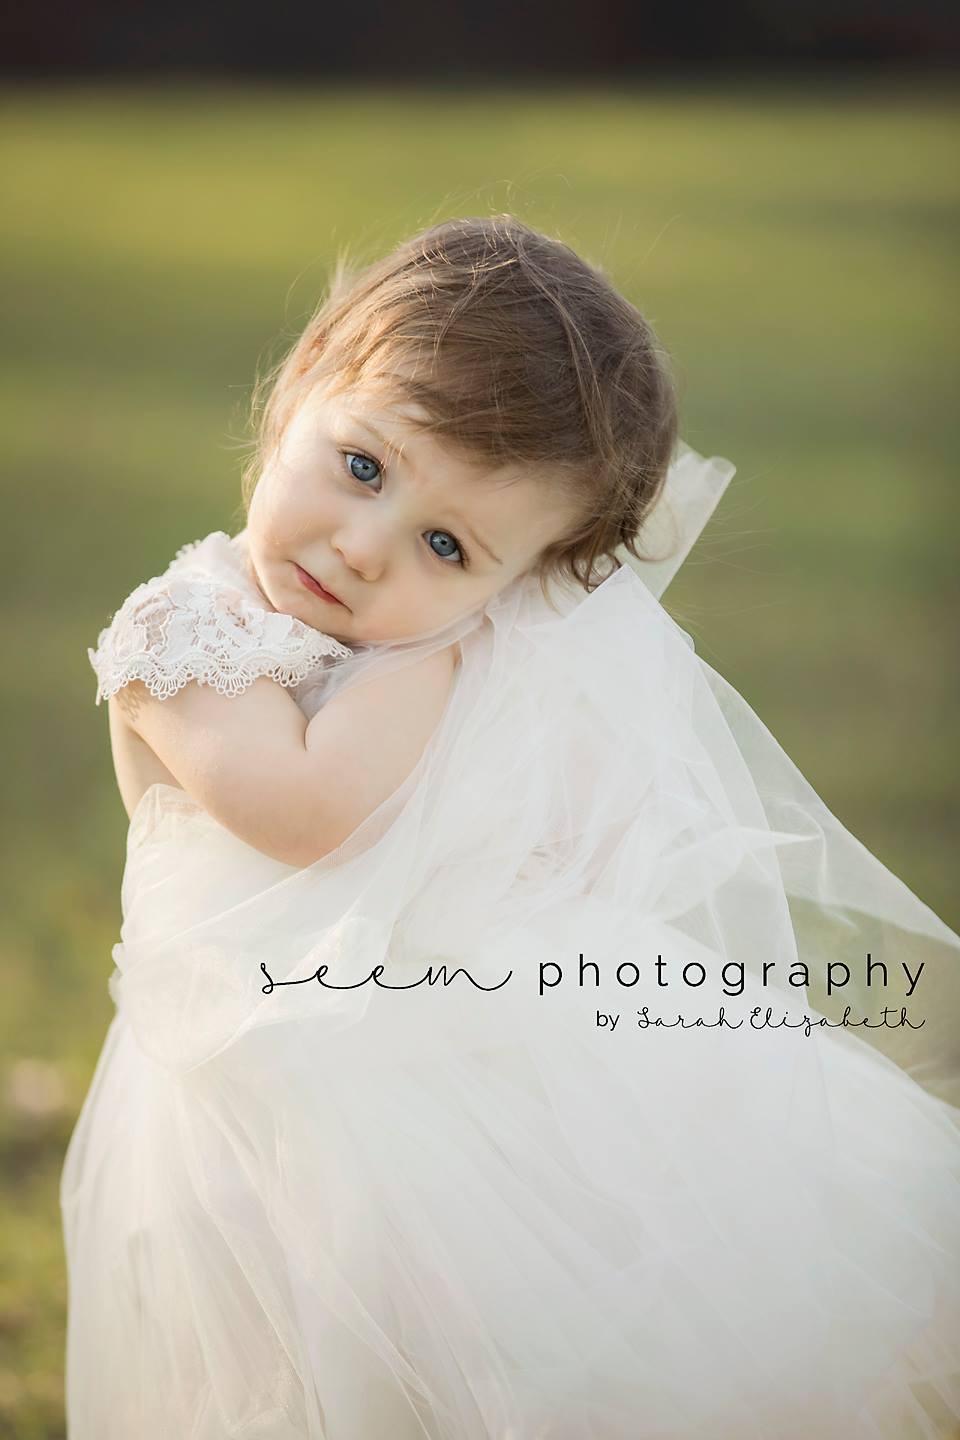 Houston Children Photographers SEEM photography White Dress